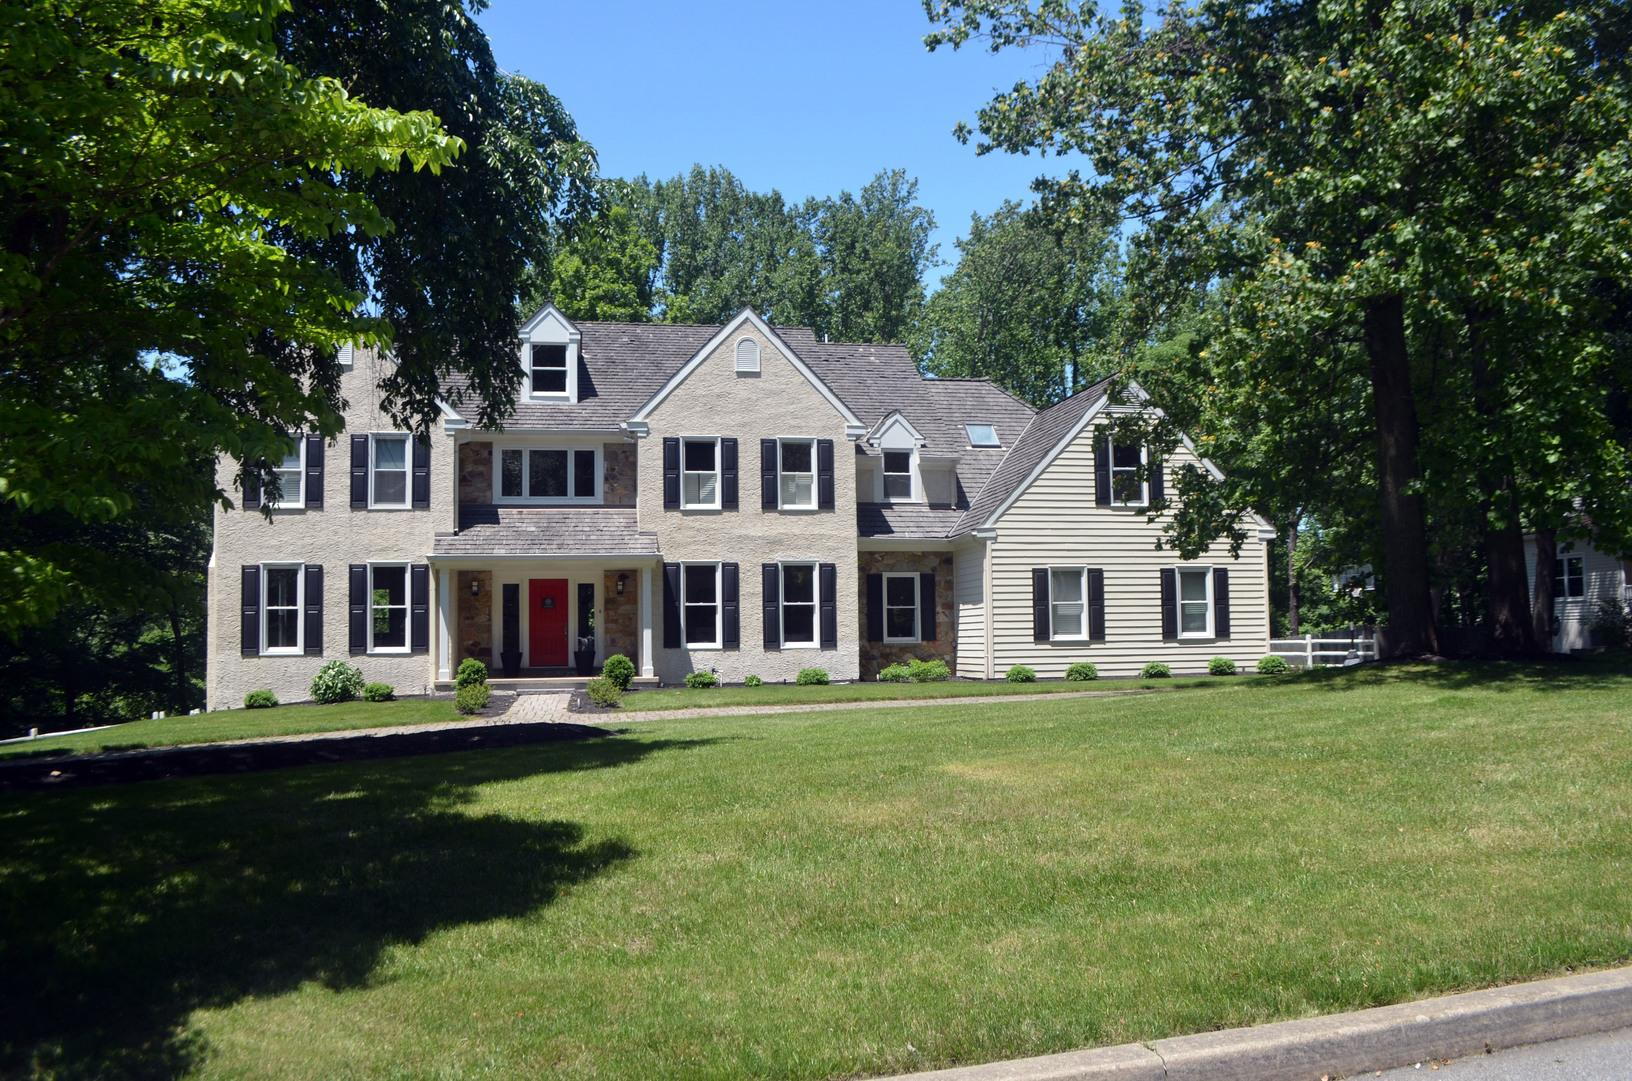 Hardie Planks and Stucco Siding on Home in PA